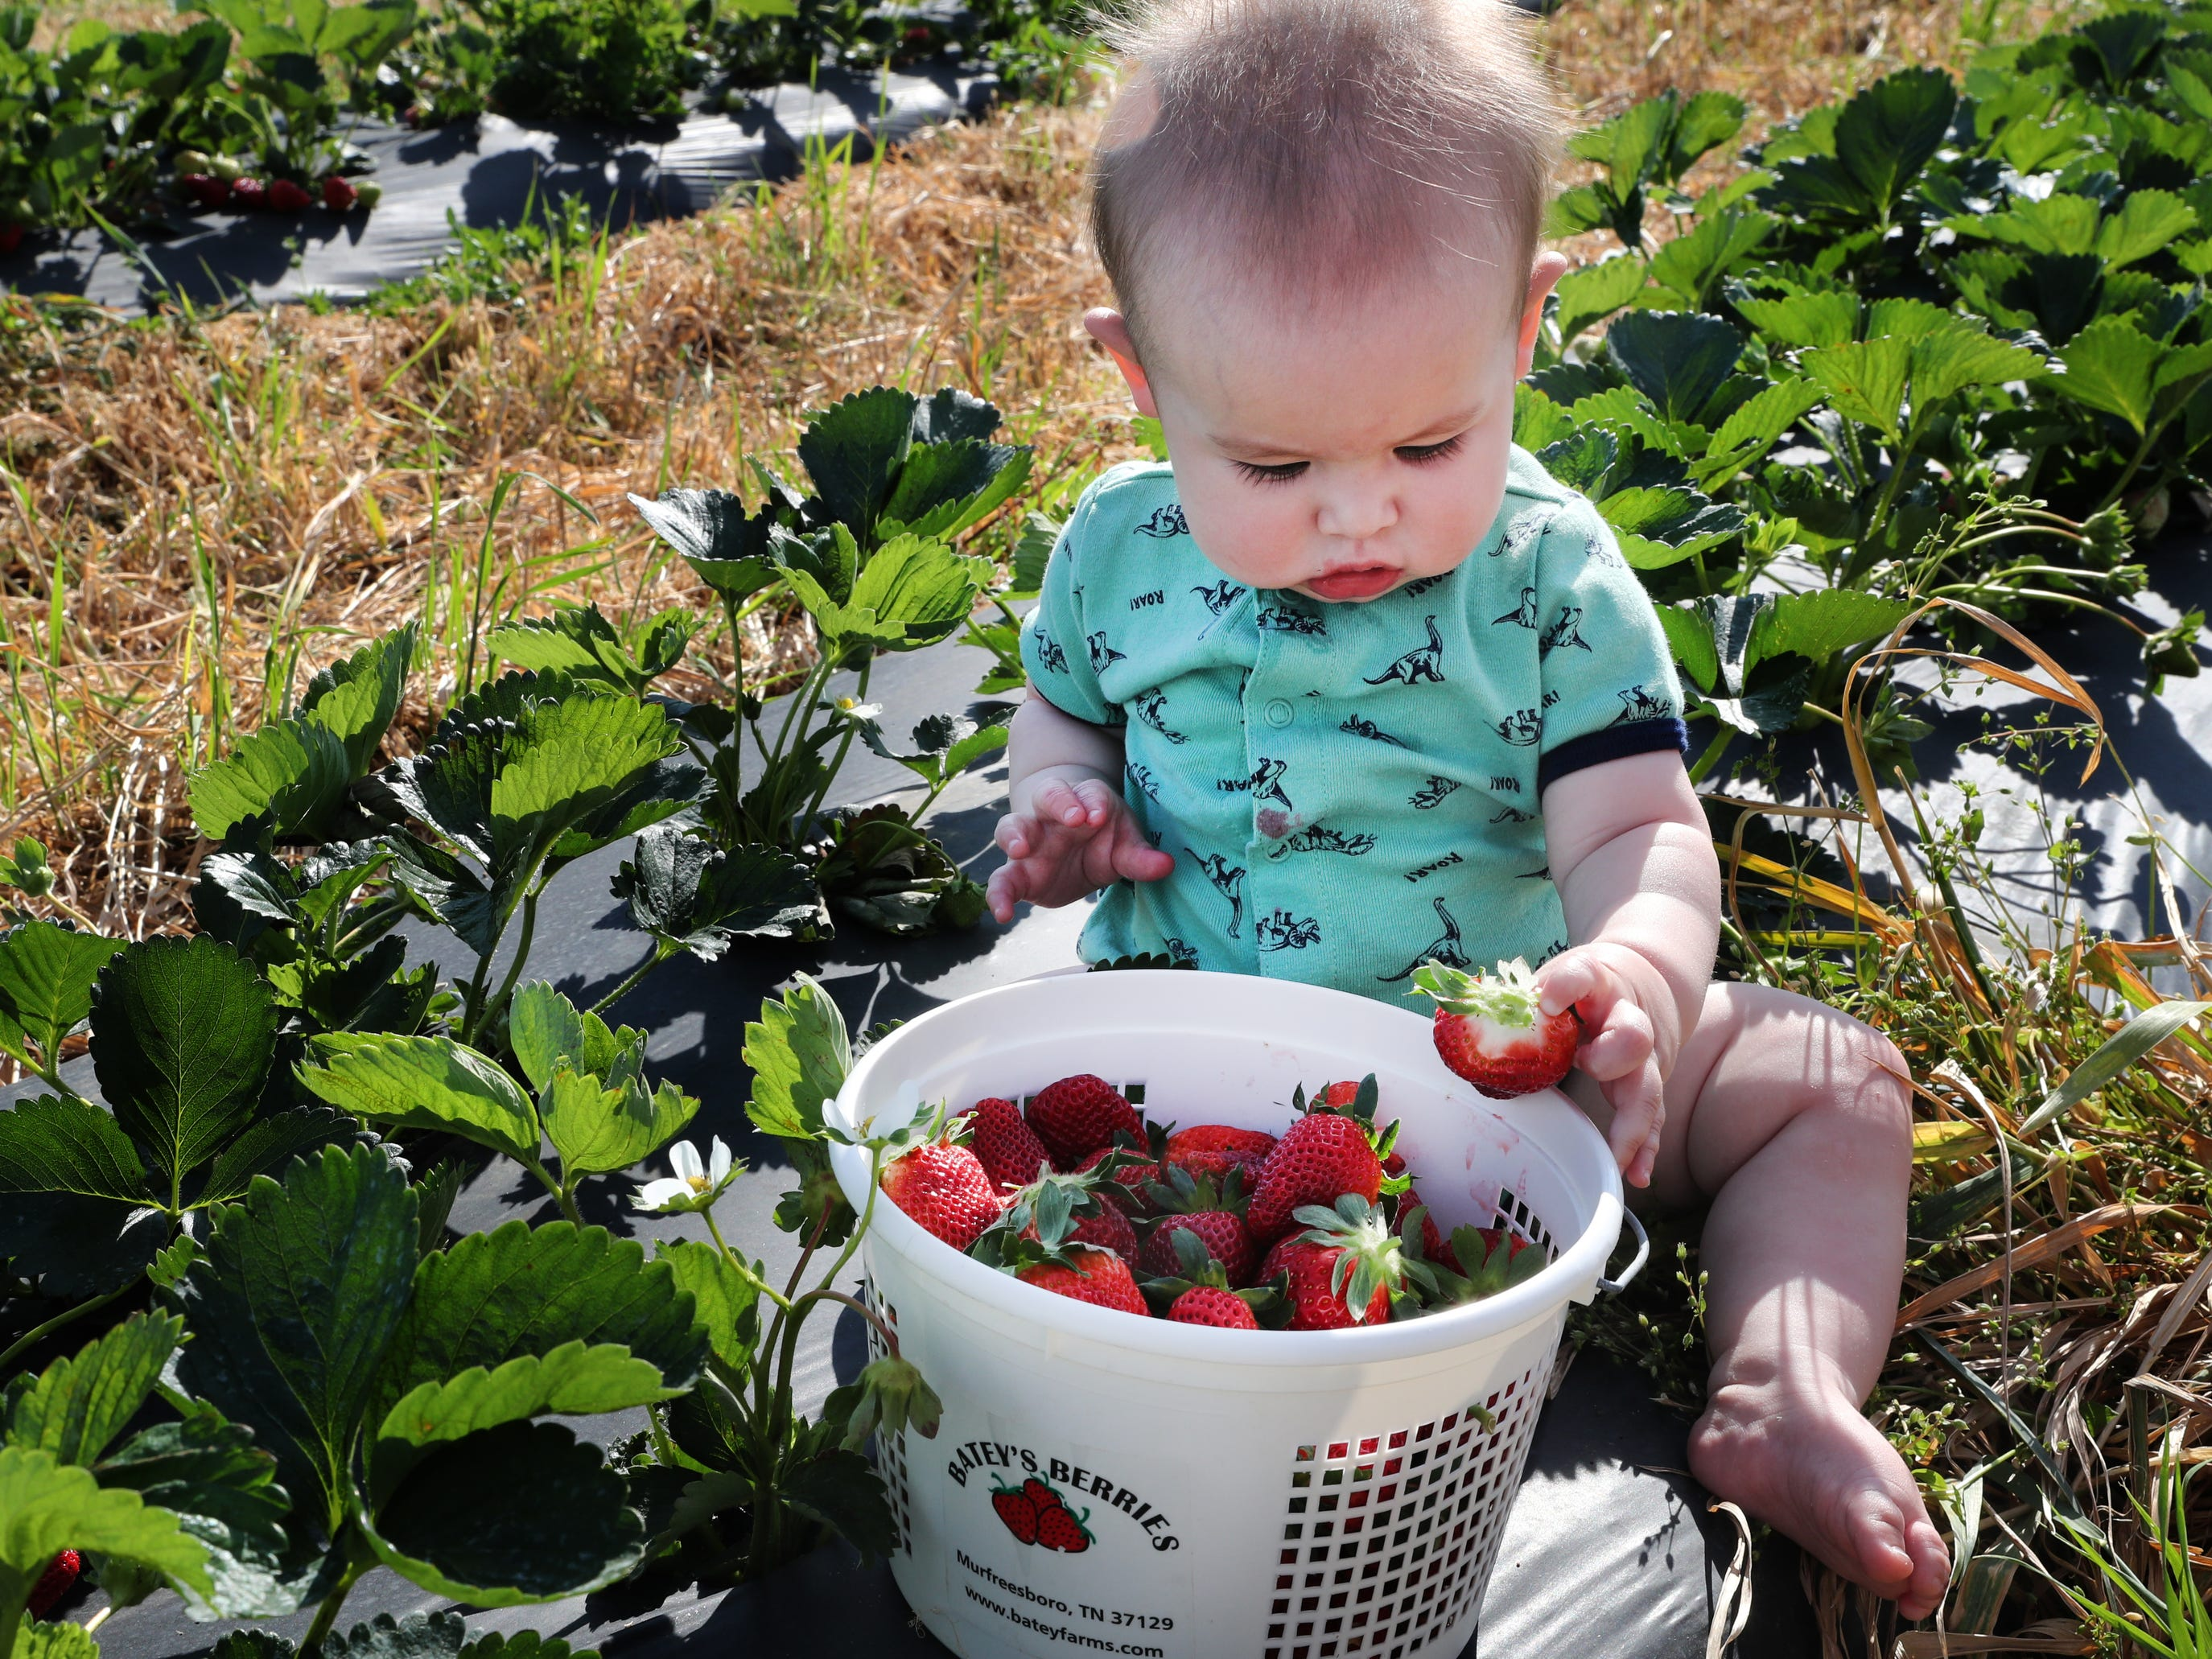 Tres Gonzalez, 8-months-old sits among the strawberry plants and he explores a basket of fresh picked strawberries on Wednesday April 24, 2019, at Batey Farms in Murfreesboro.